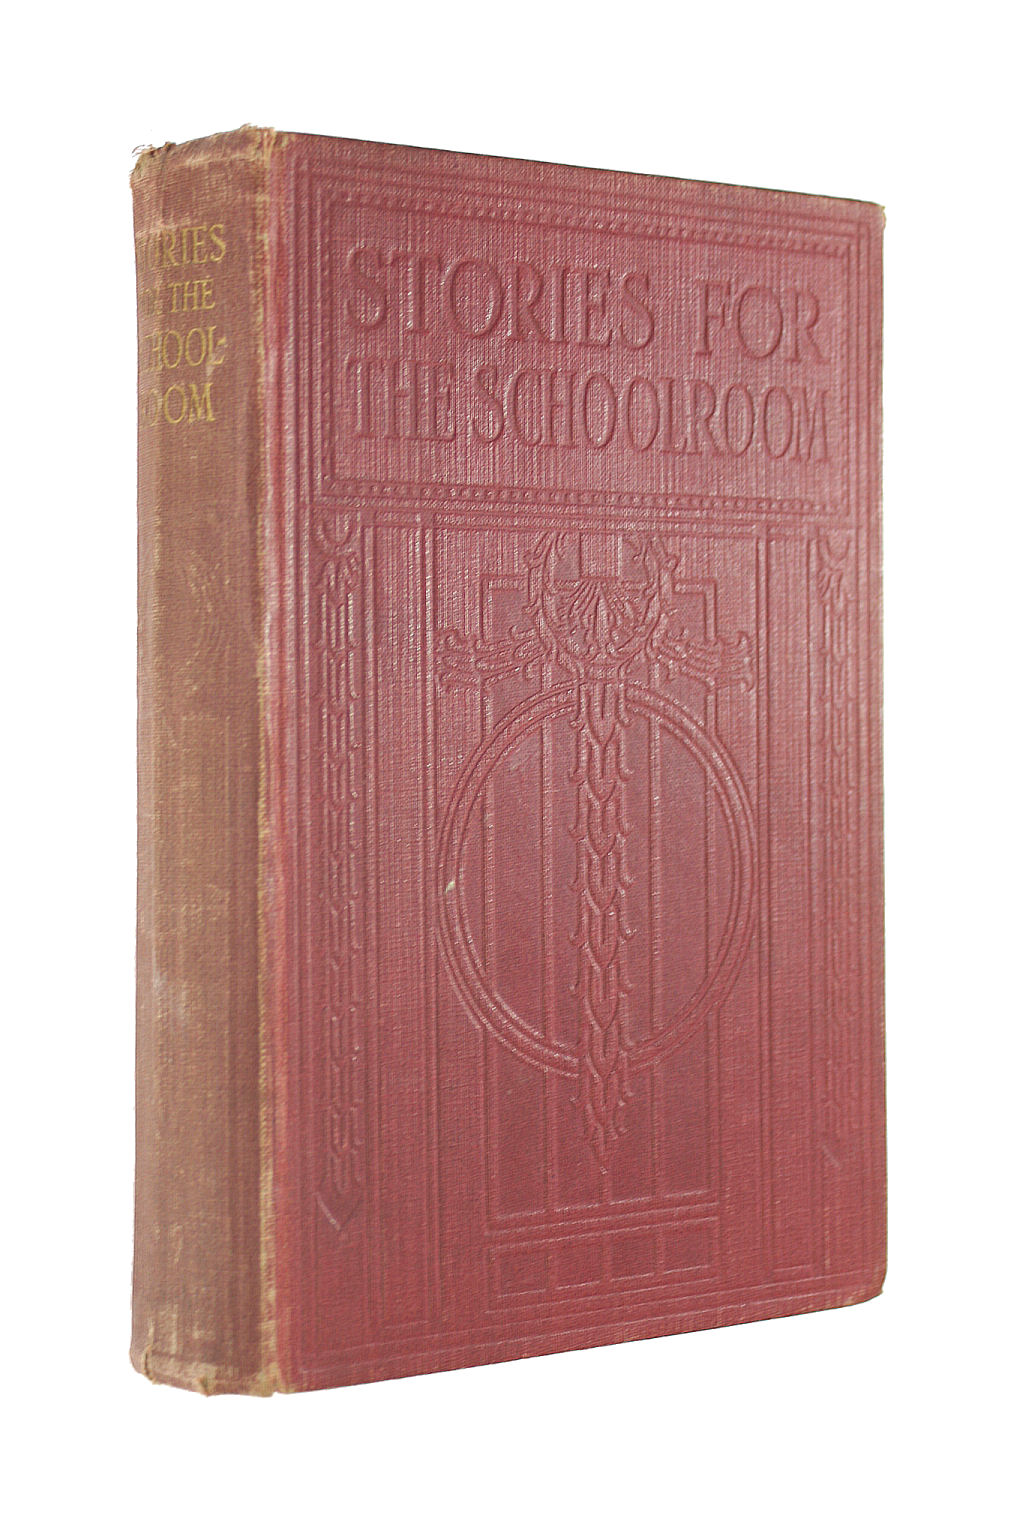 Image for Stories From The Schoolroom